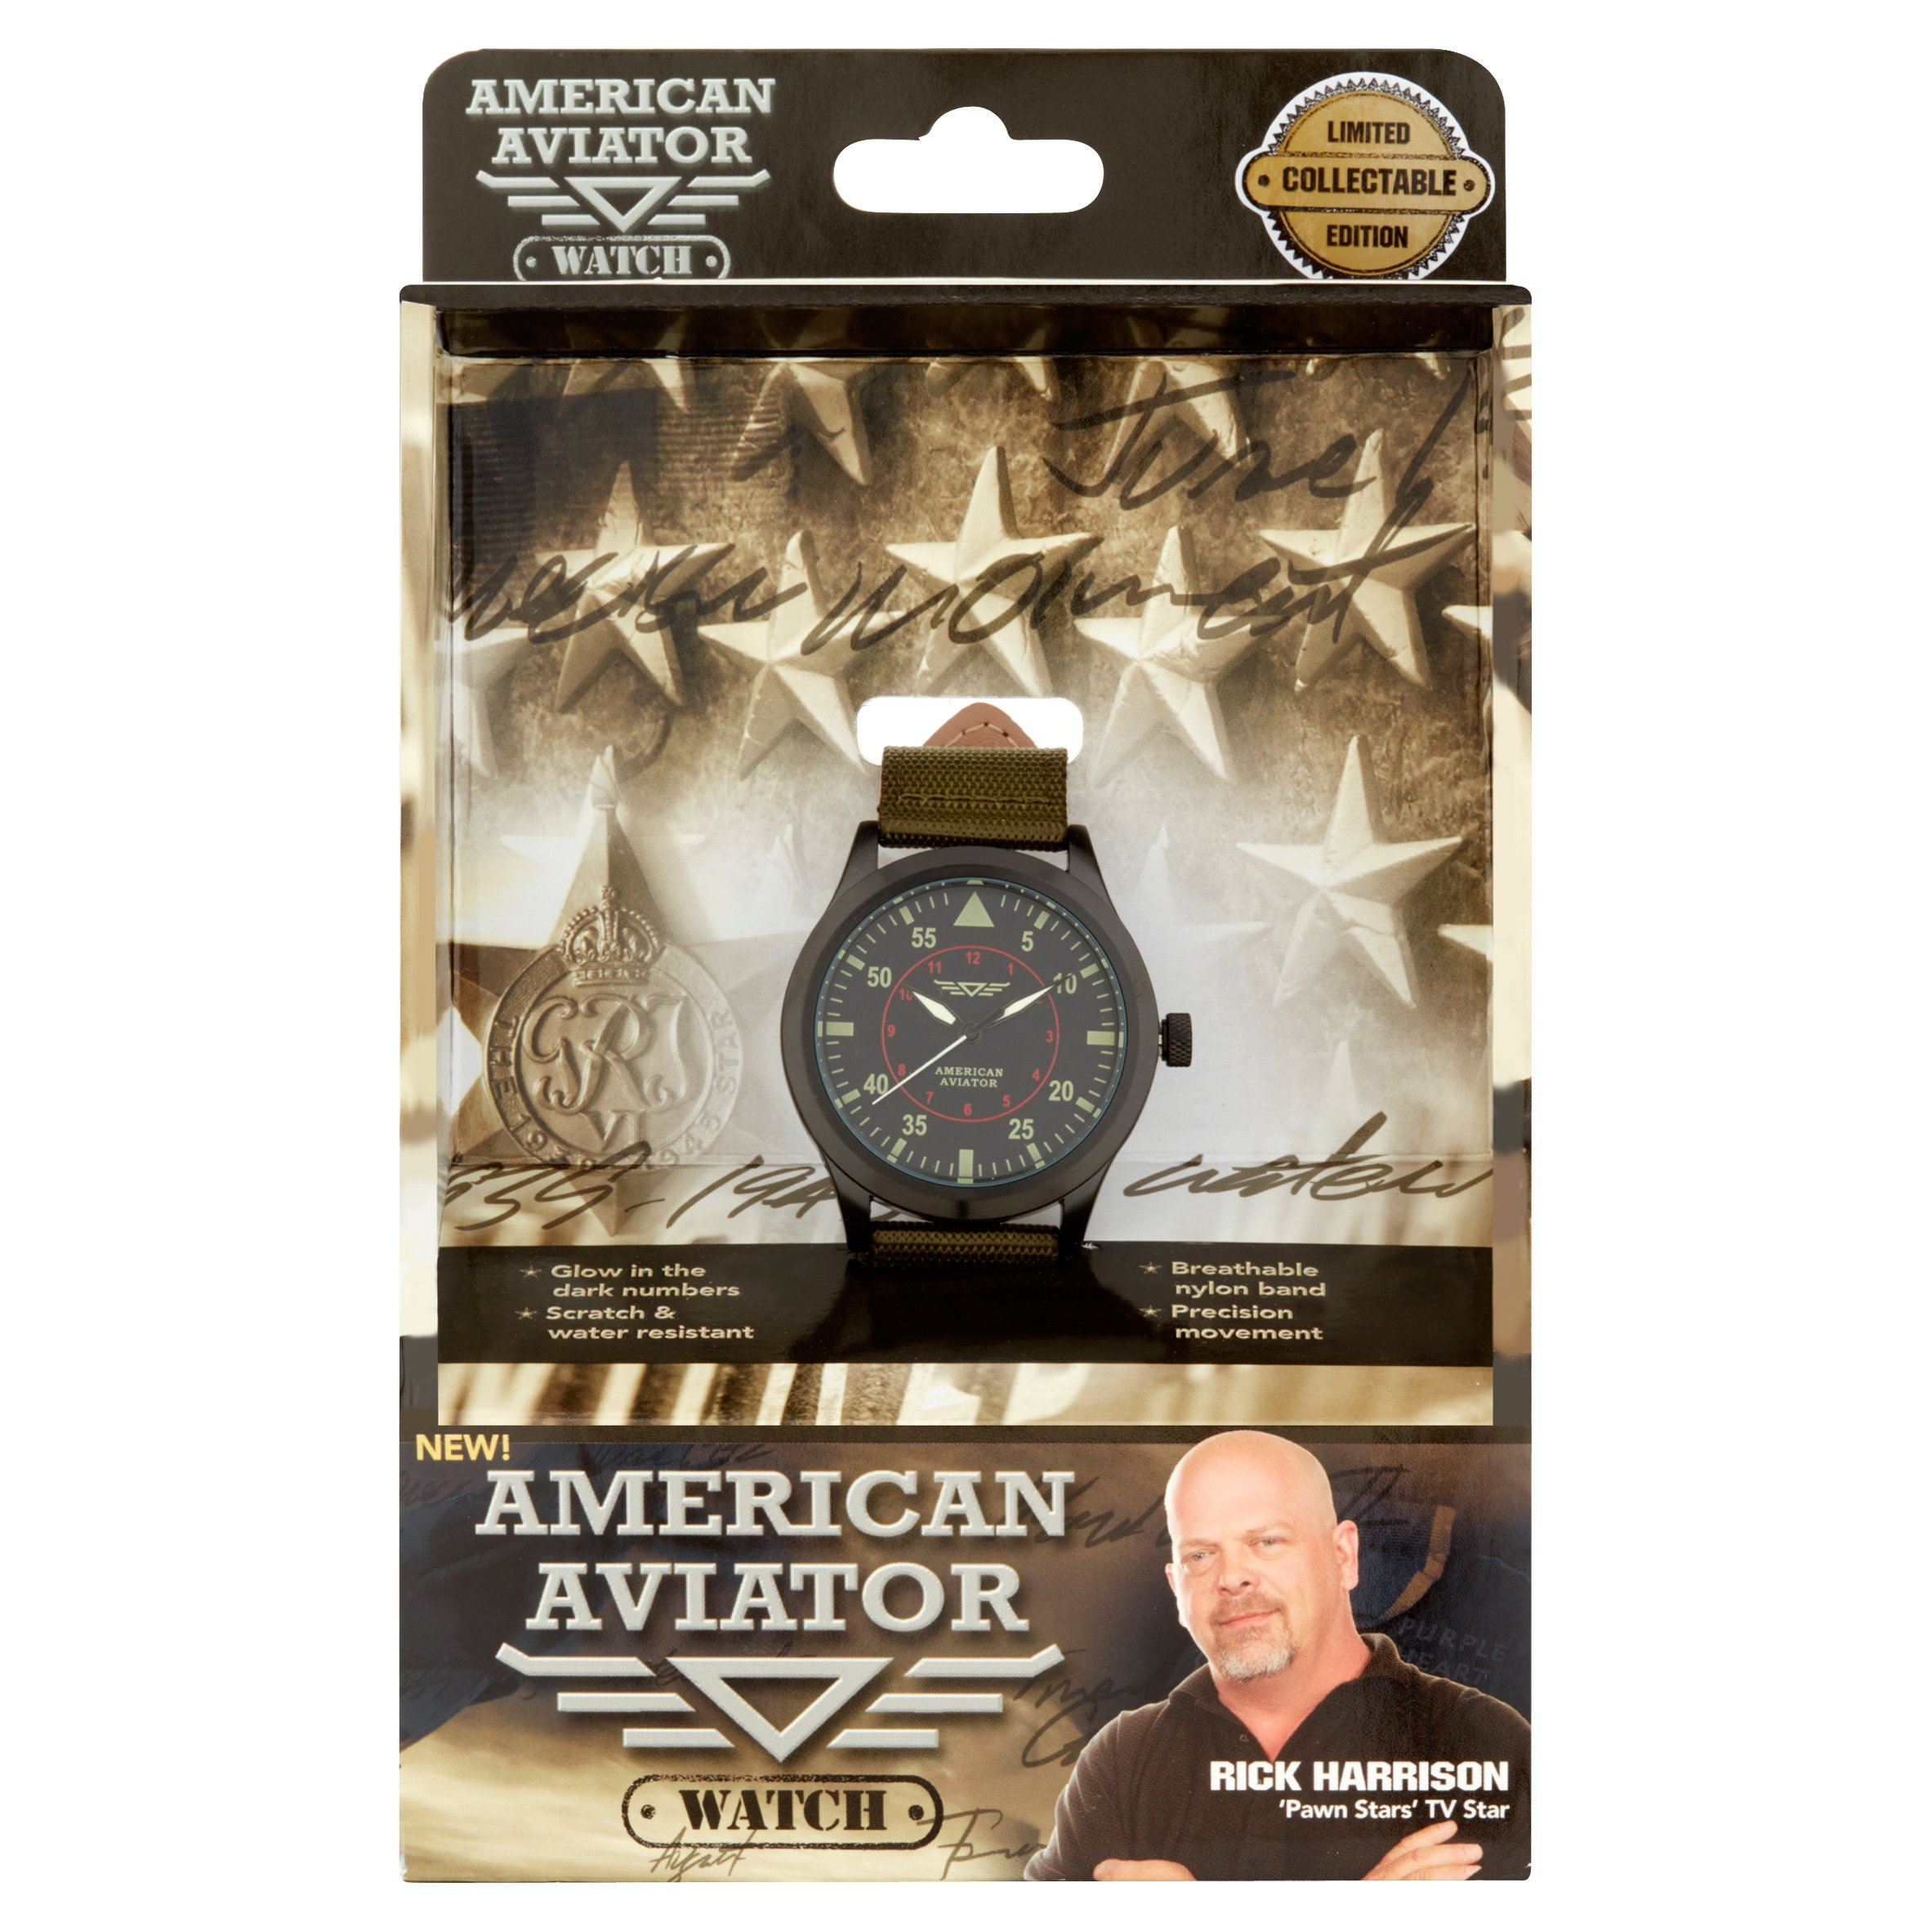 American Aviator Collectible Watch Limited Edition